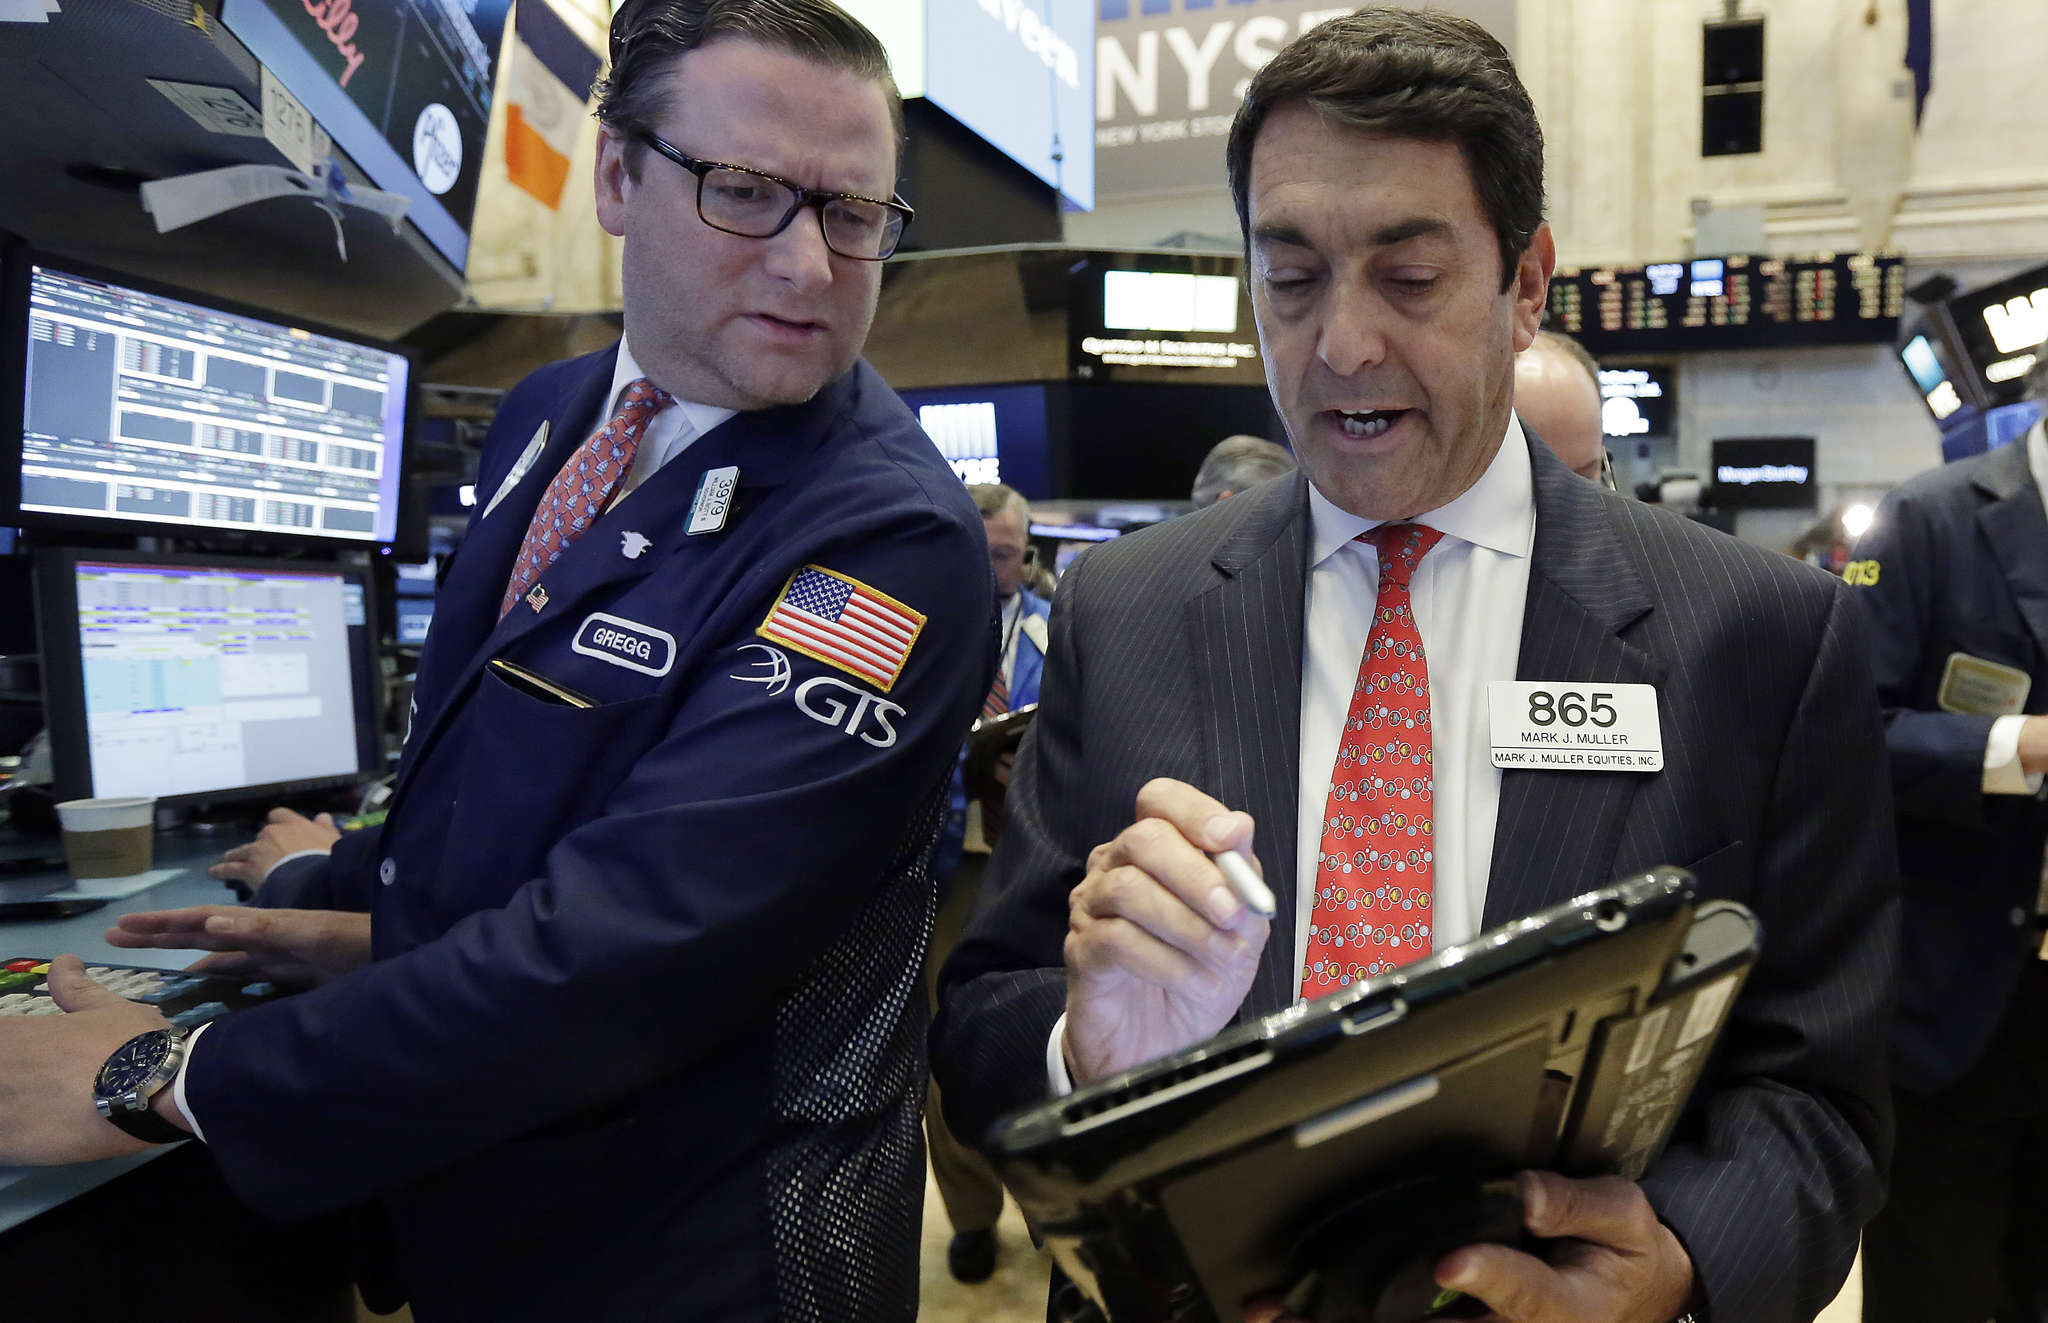 Gregg Maloney and Mark Muller (right) on the NYSE floor. Banks bucked the broader market decline, and oil rose for the fourth straight day.